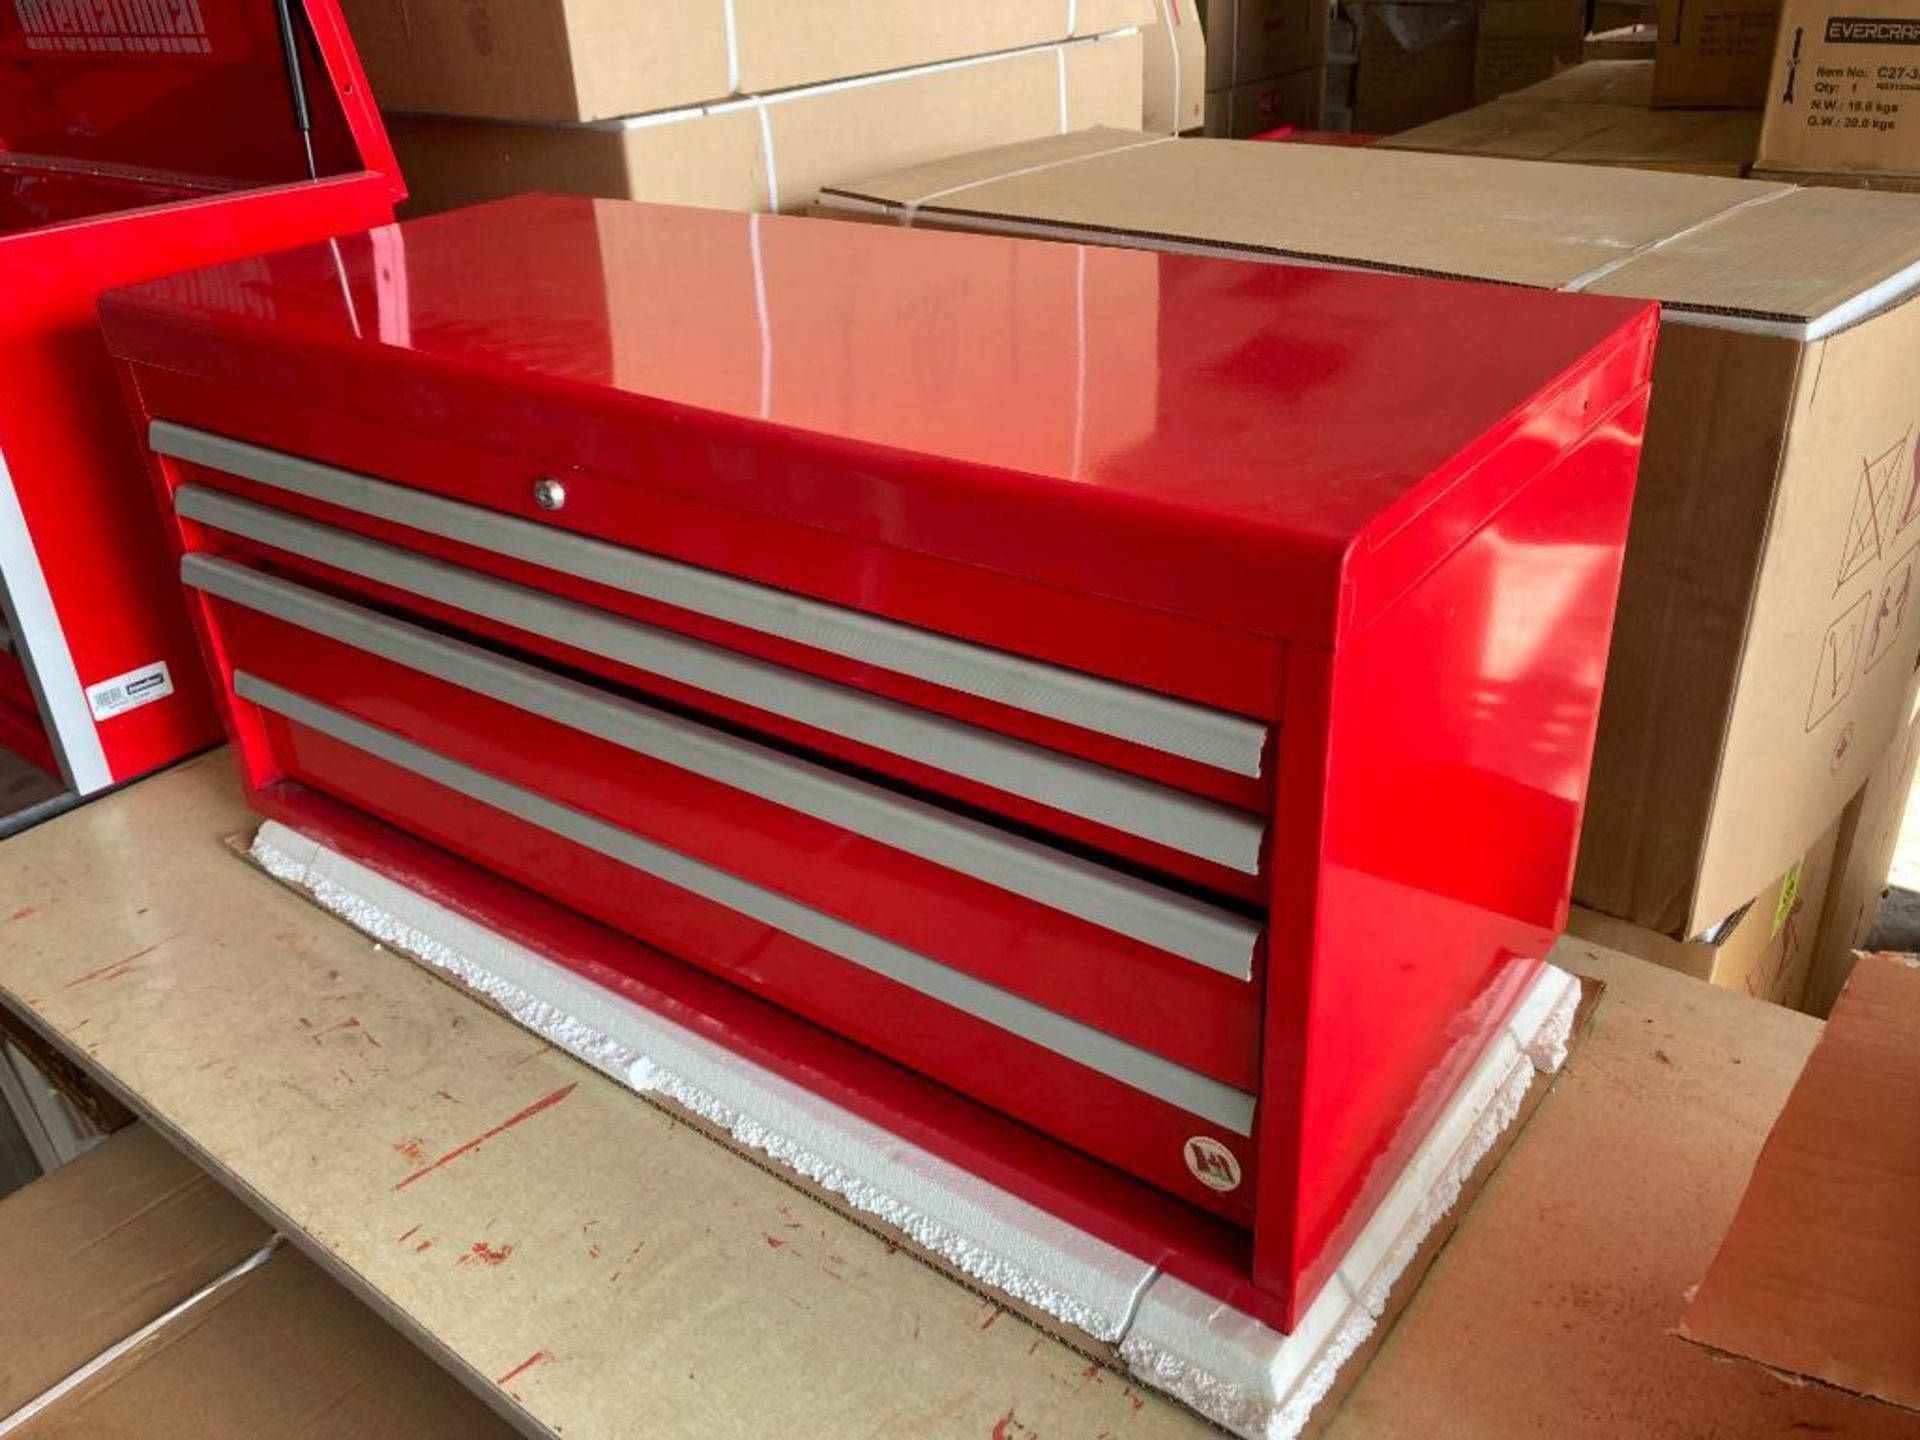 (NEW) INTERNATIONAL 4-DRAWER TOP TOOL CHEST, 40'' X 18'', RED - Image 2 of 2